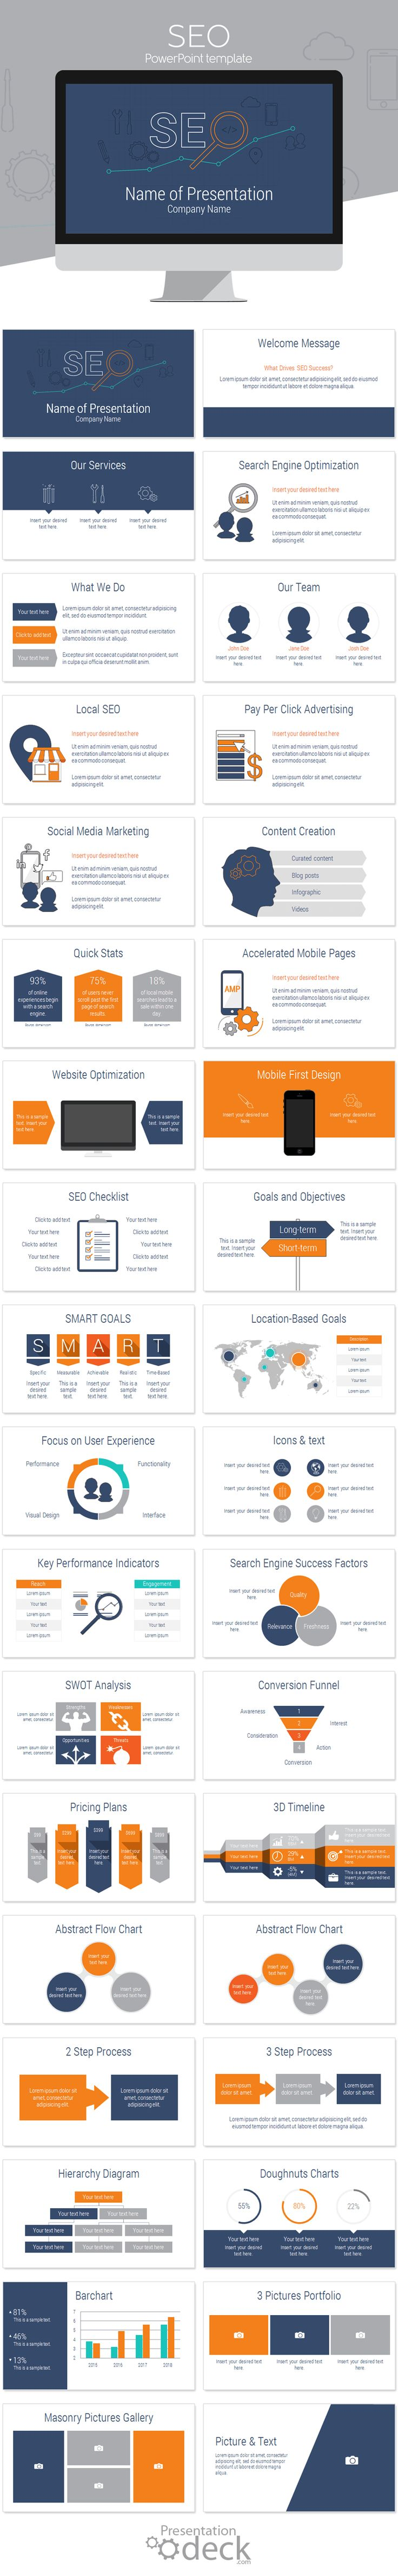 Search engine optimization PowerPoint template with 36 beautifully designed slides! This template is perfect for digital marketing agencies and could be used for presentations on; digital marketing, website optimization, online marketing, SMM, etc.